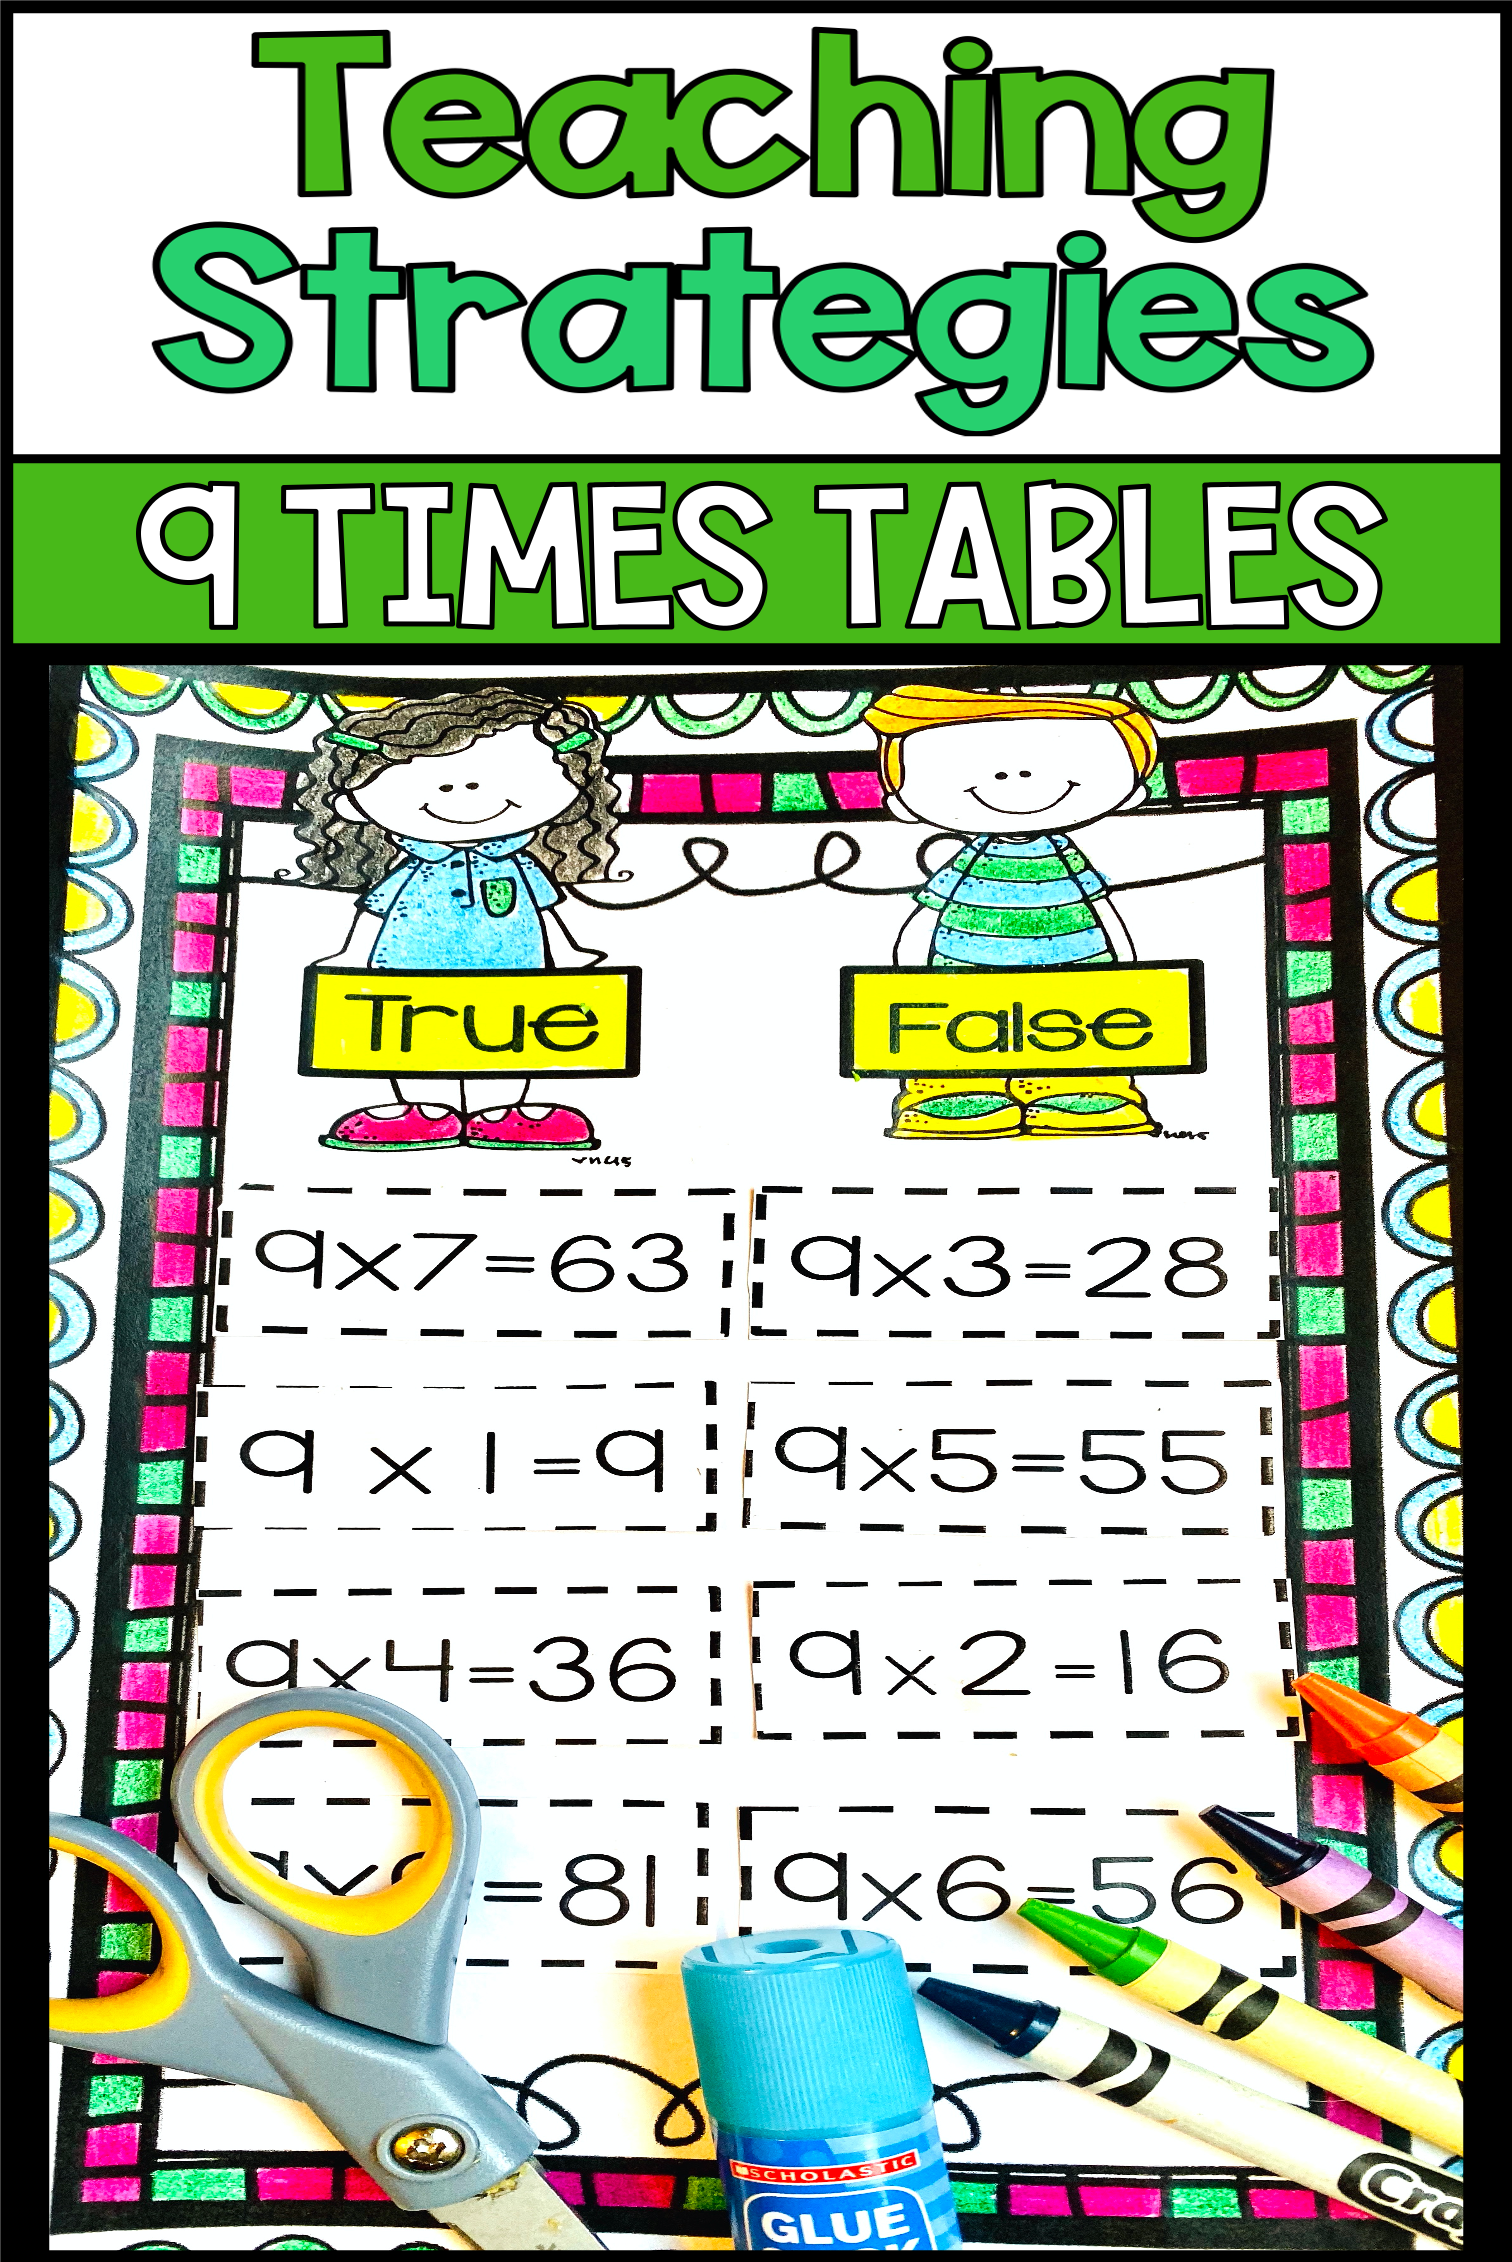 3 Cool Simple Tricks To Multiply By 9 That Your Students